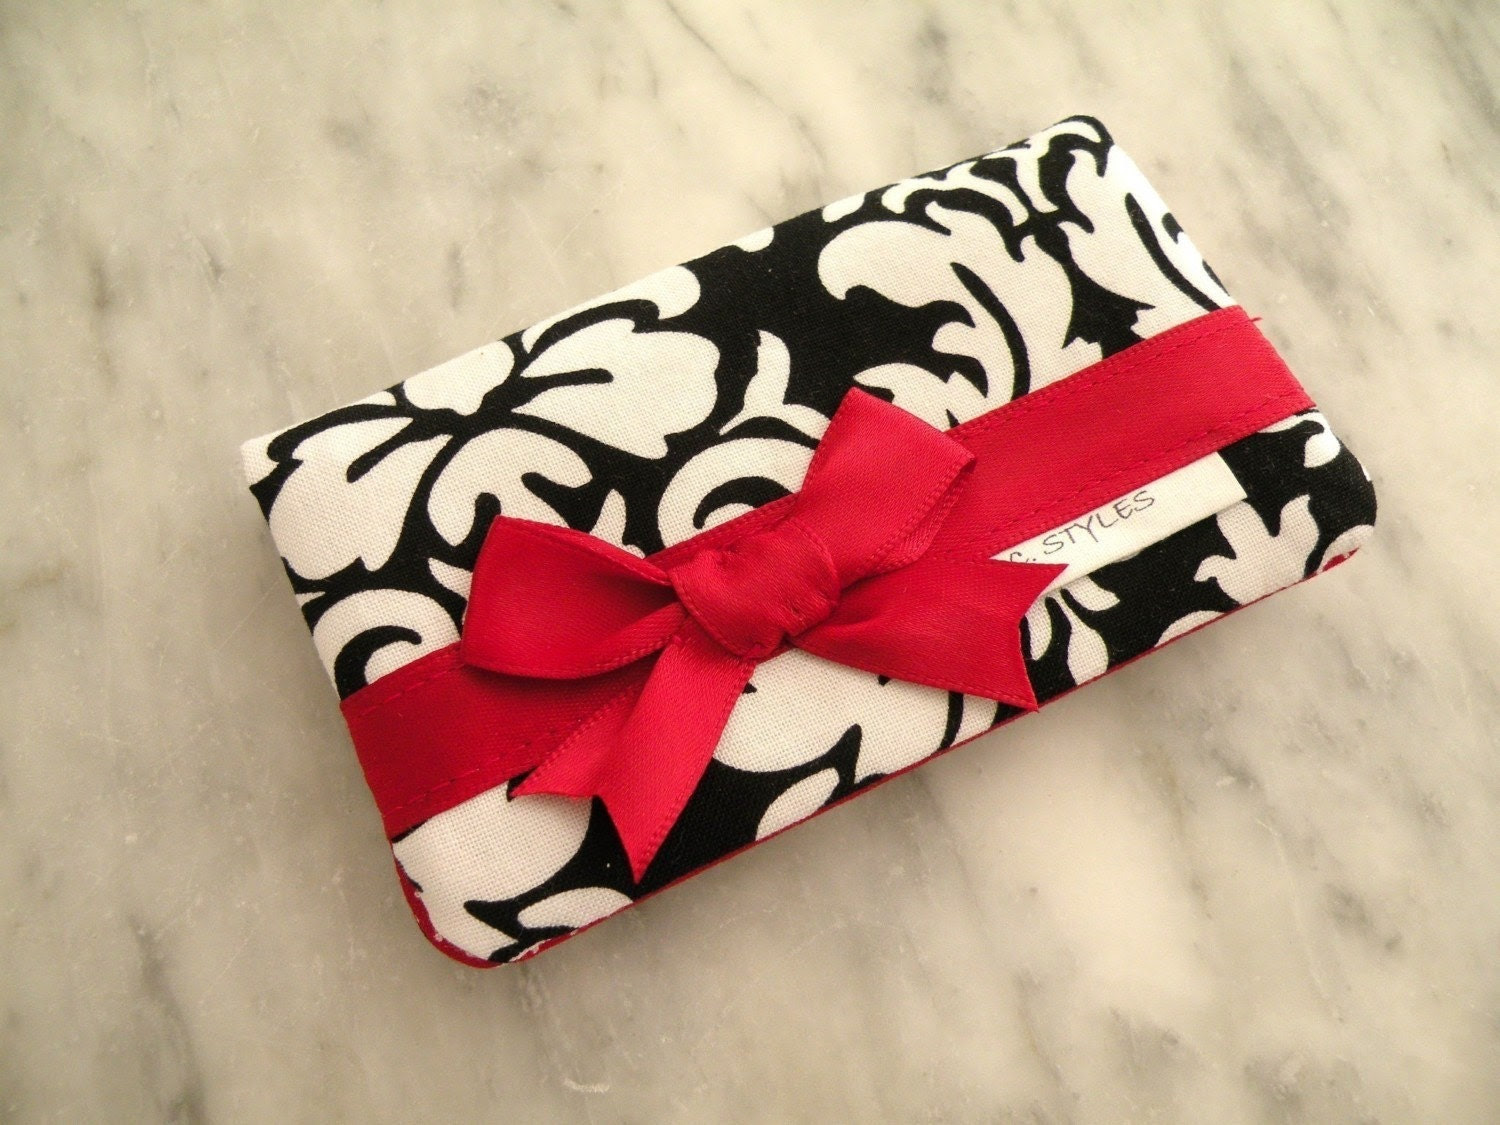 Card Holder--Business Card Holder--Black-White Dandy Damask with Red Satin Bow